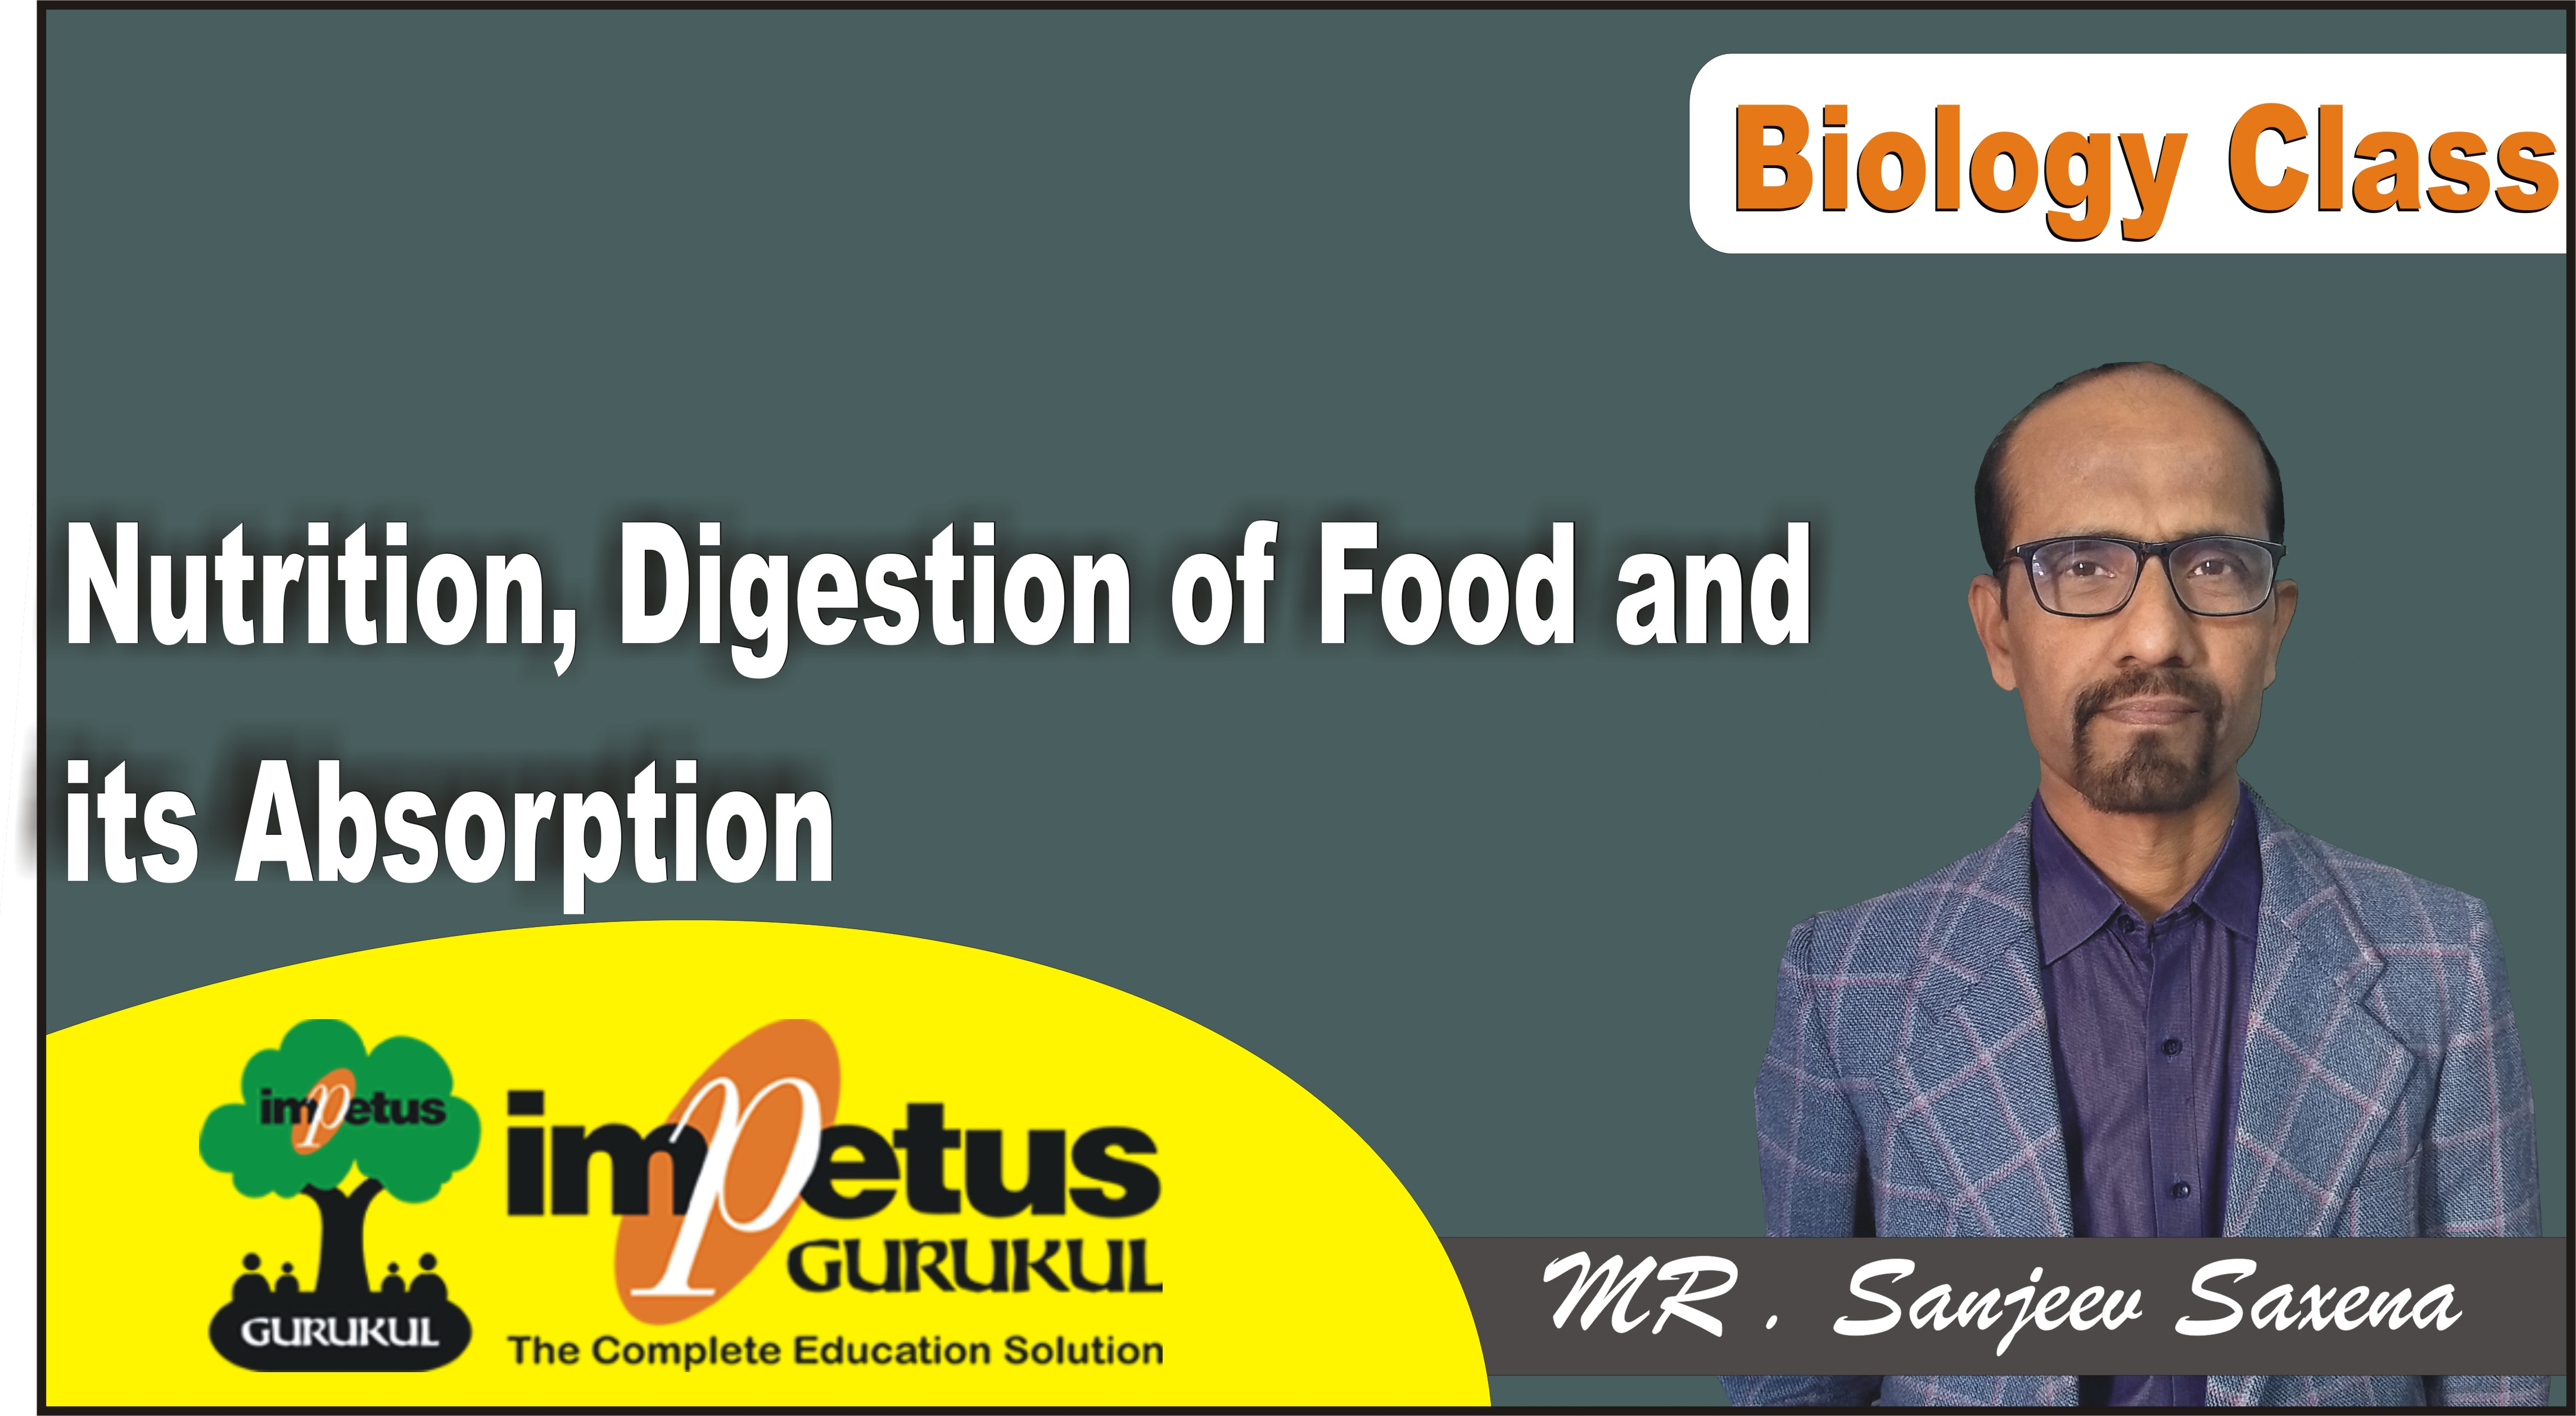 Nutrition, Digestion of Food and its Absorption